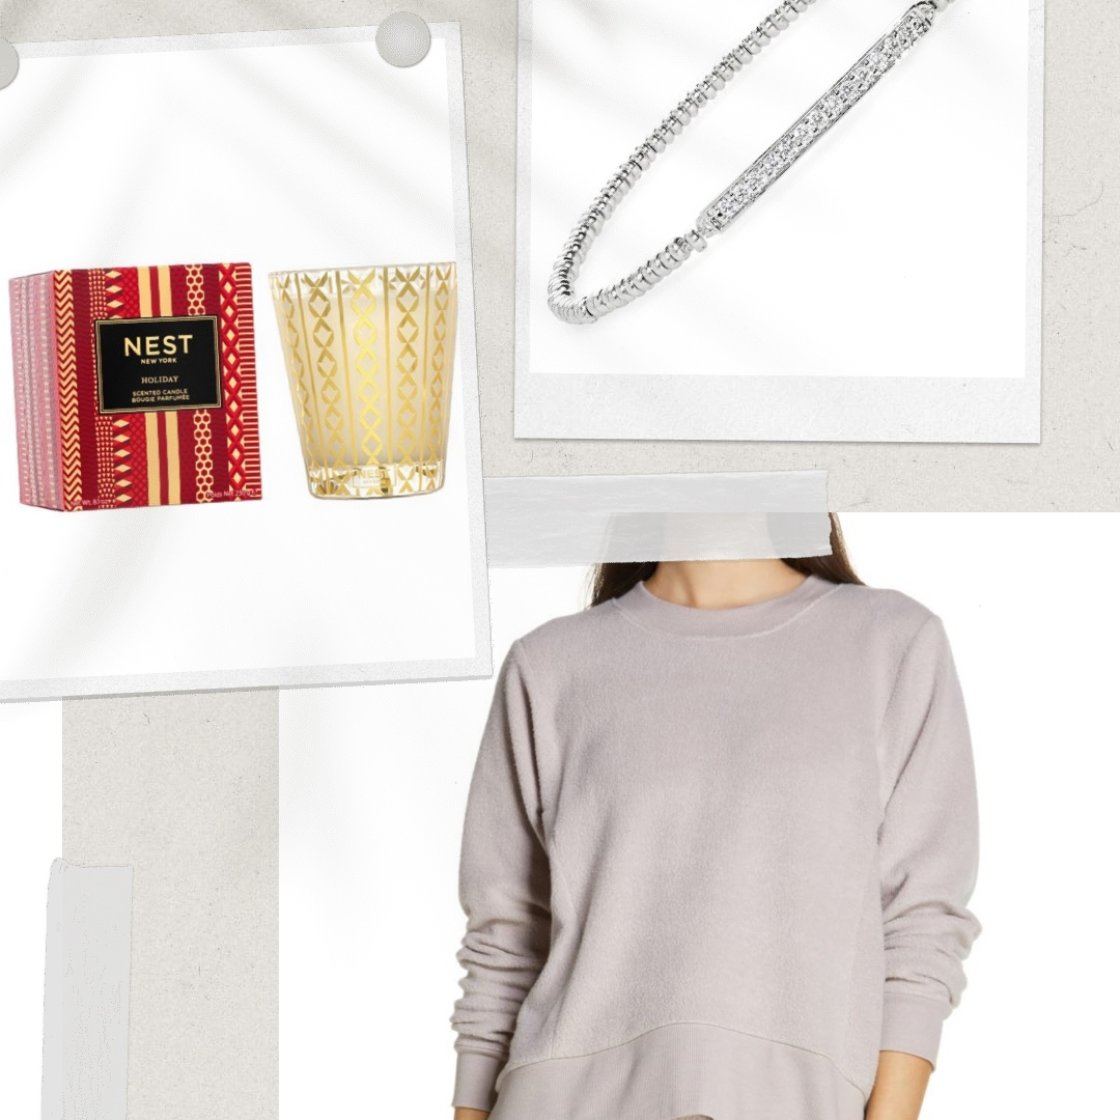 25 Gifts Under $25 That are Top Sellers This Holiday Season